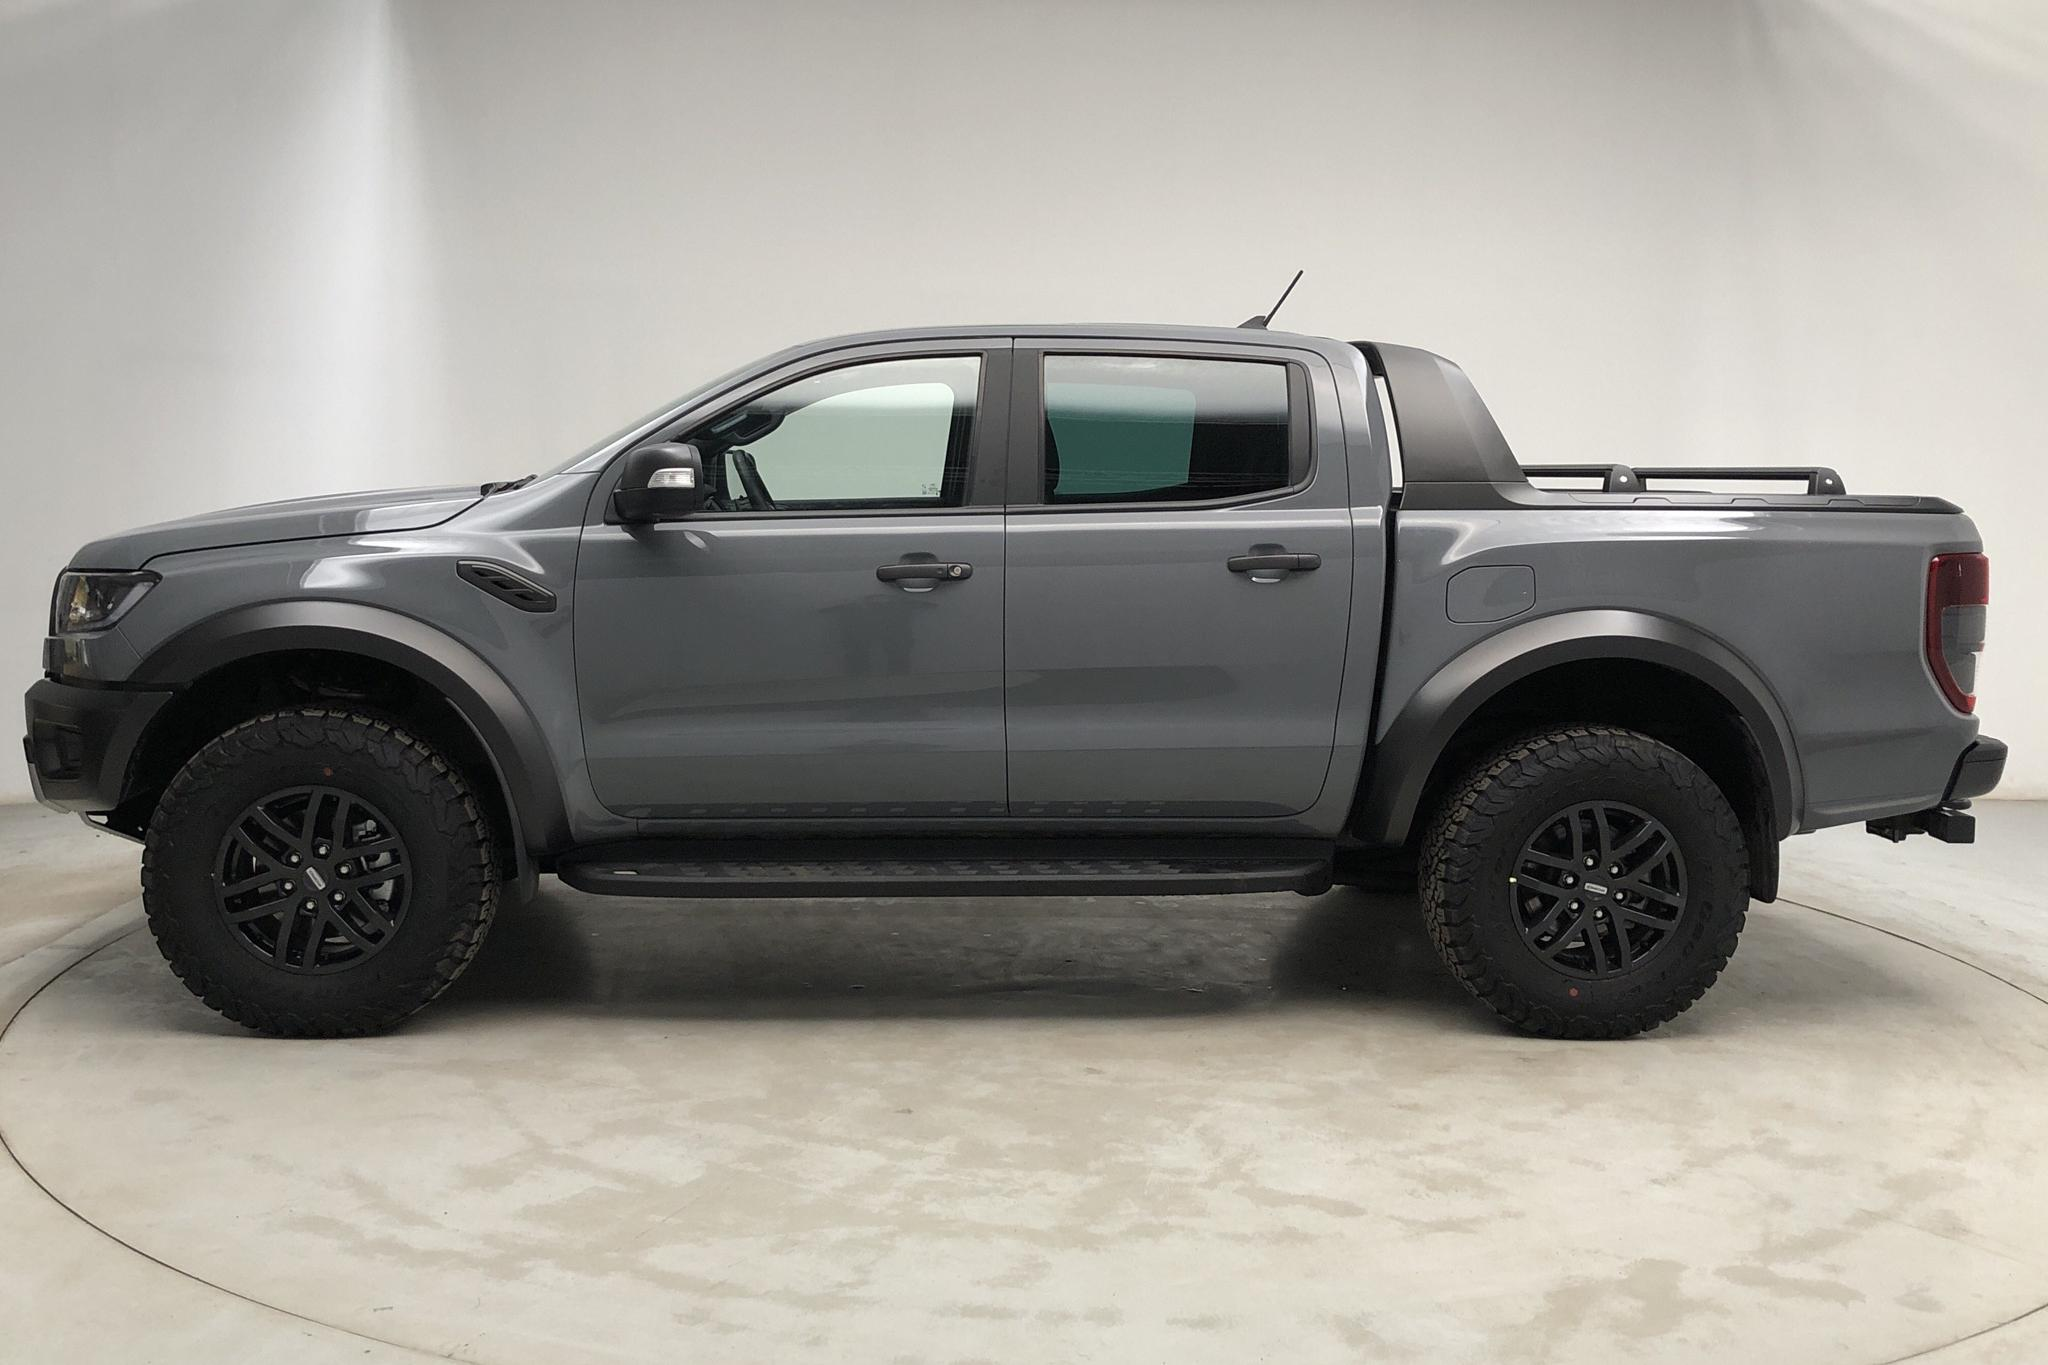 Ford Ranger 2.0 TDCi 4WD (213hk) - 6 780 km - Automatic - gray - 2021